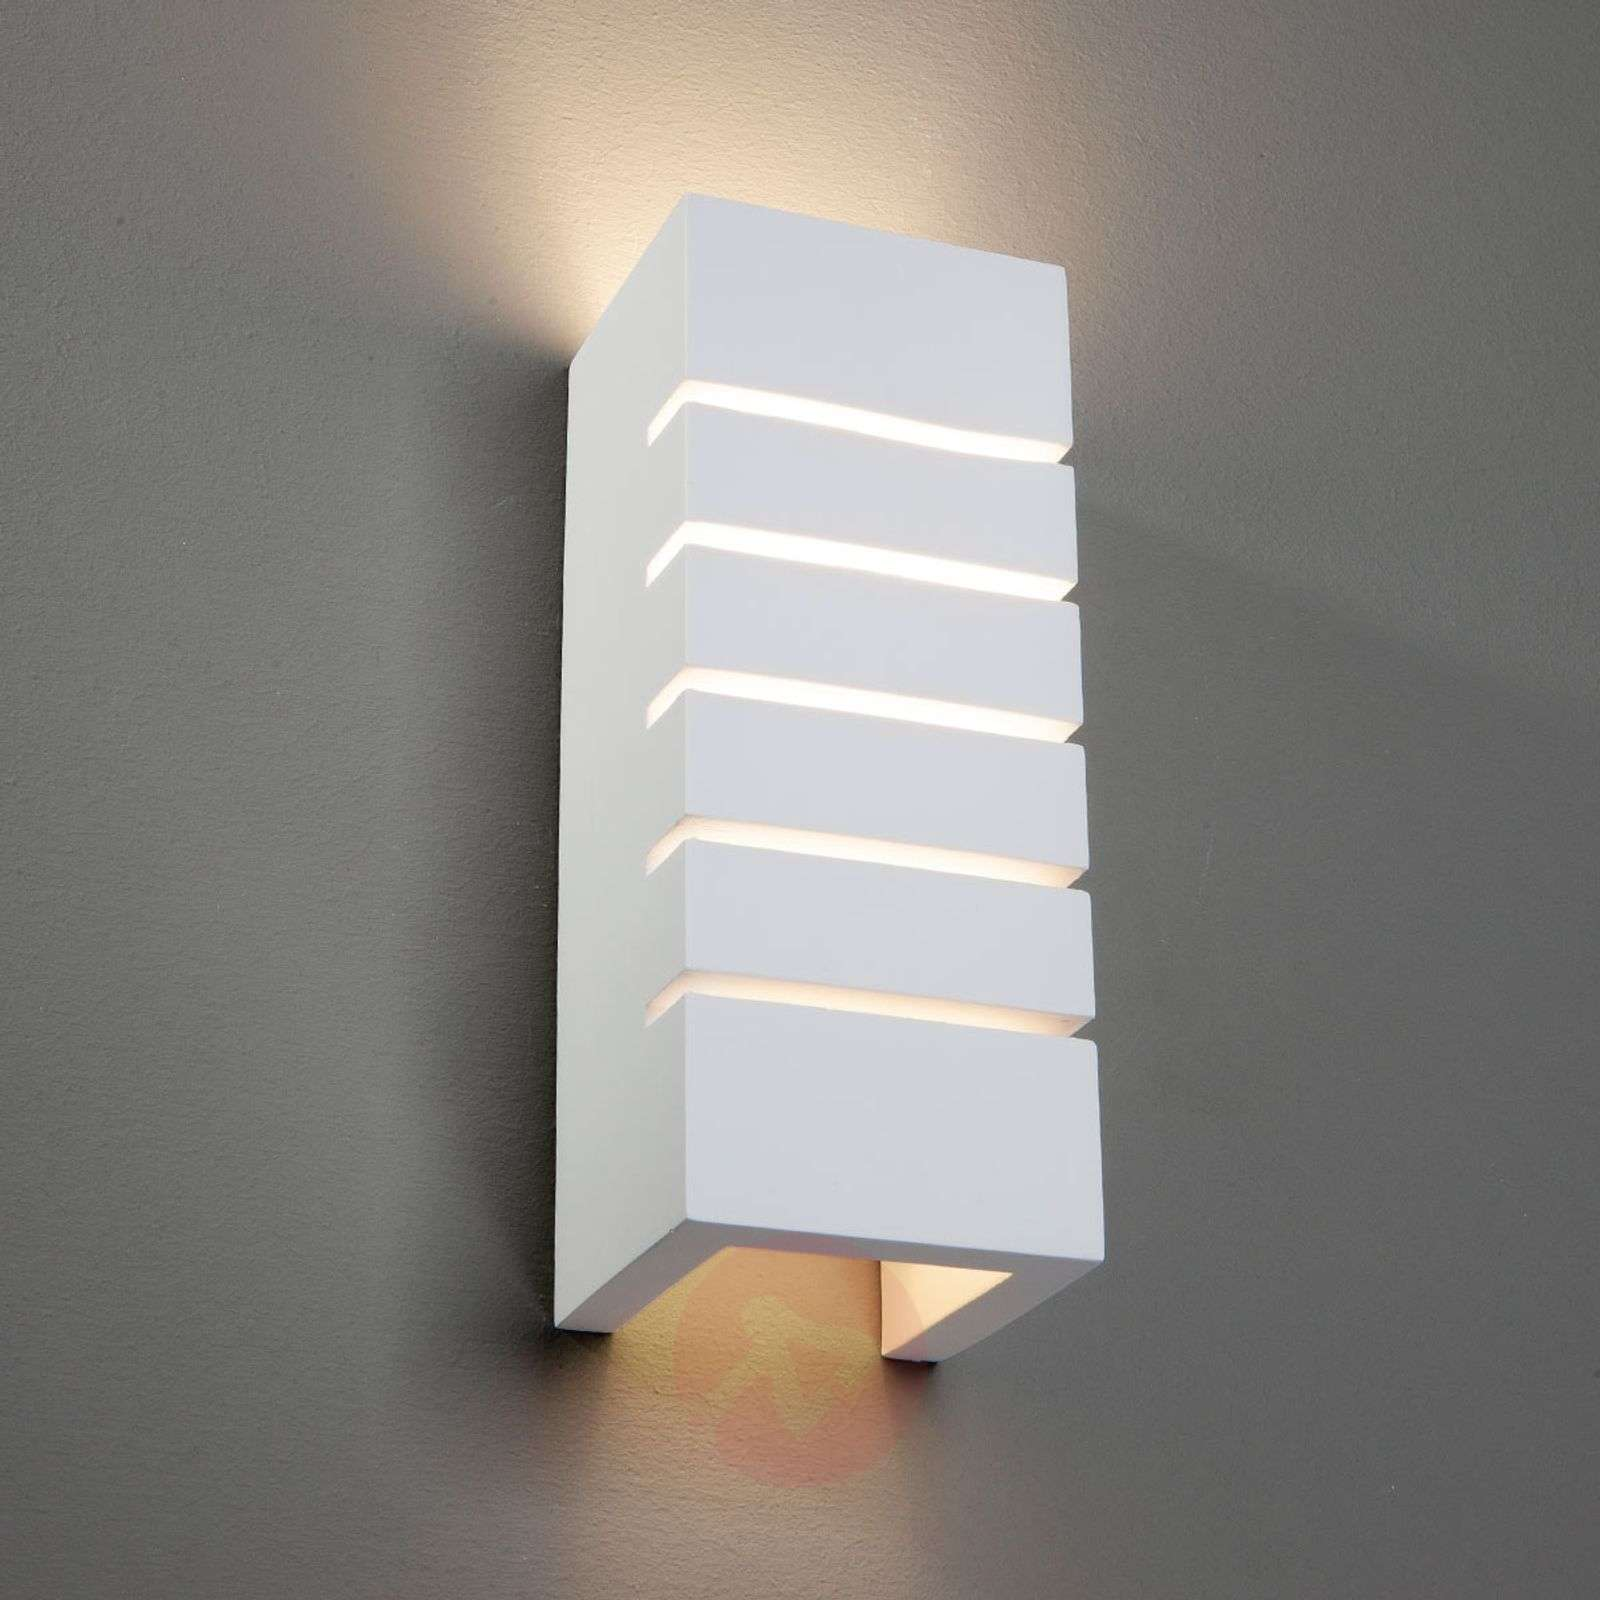 Indirect Wall Lighting flavian - indirect wall light with slots | lights.co.uk